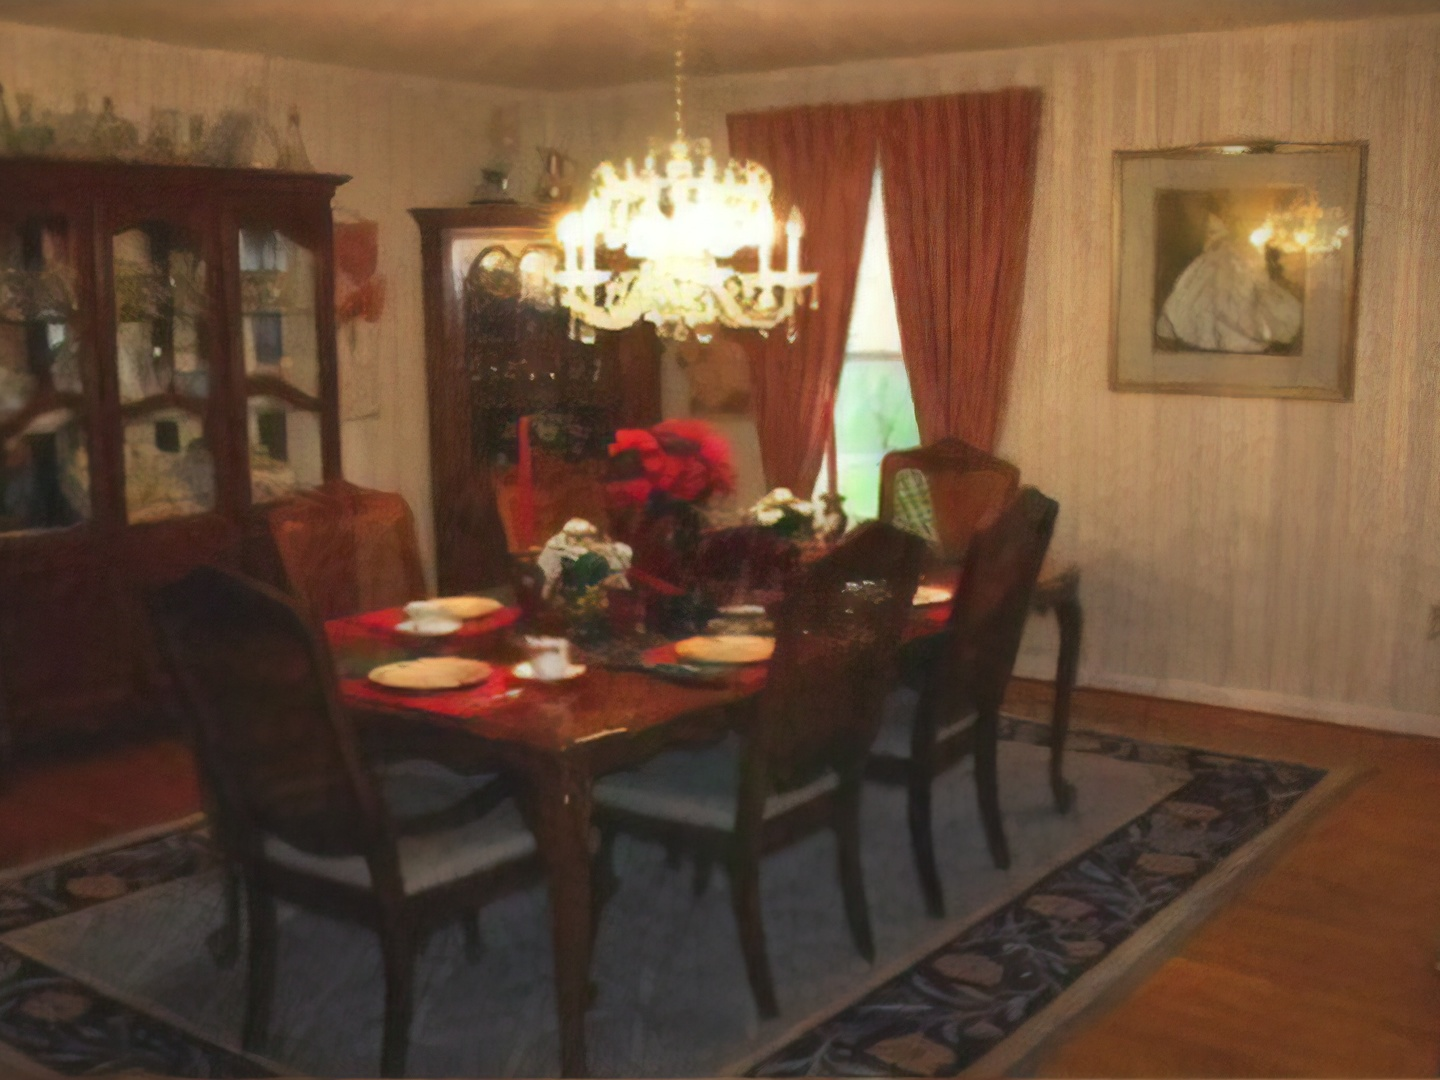 A living room filled with furniture and a fire place and a dining table at Middle Grove Inn.